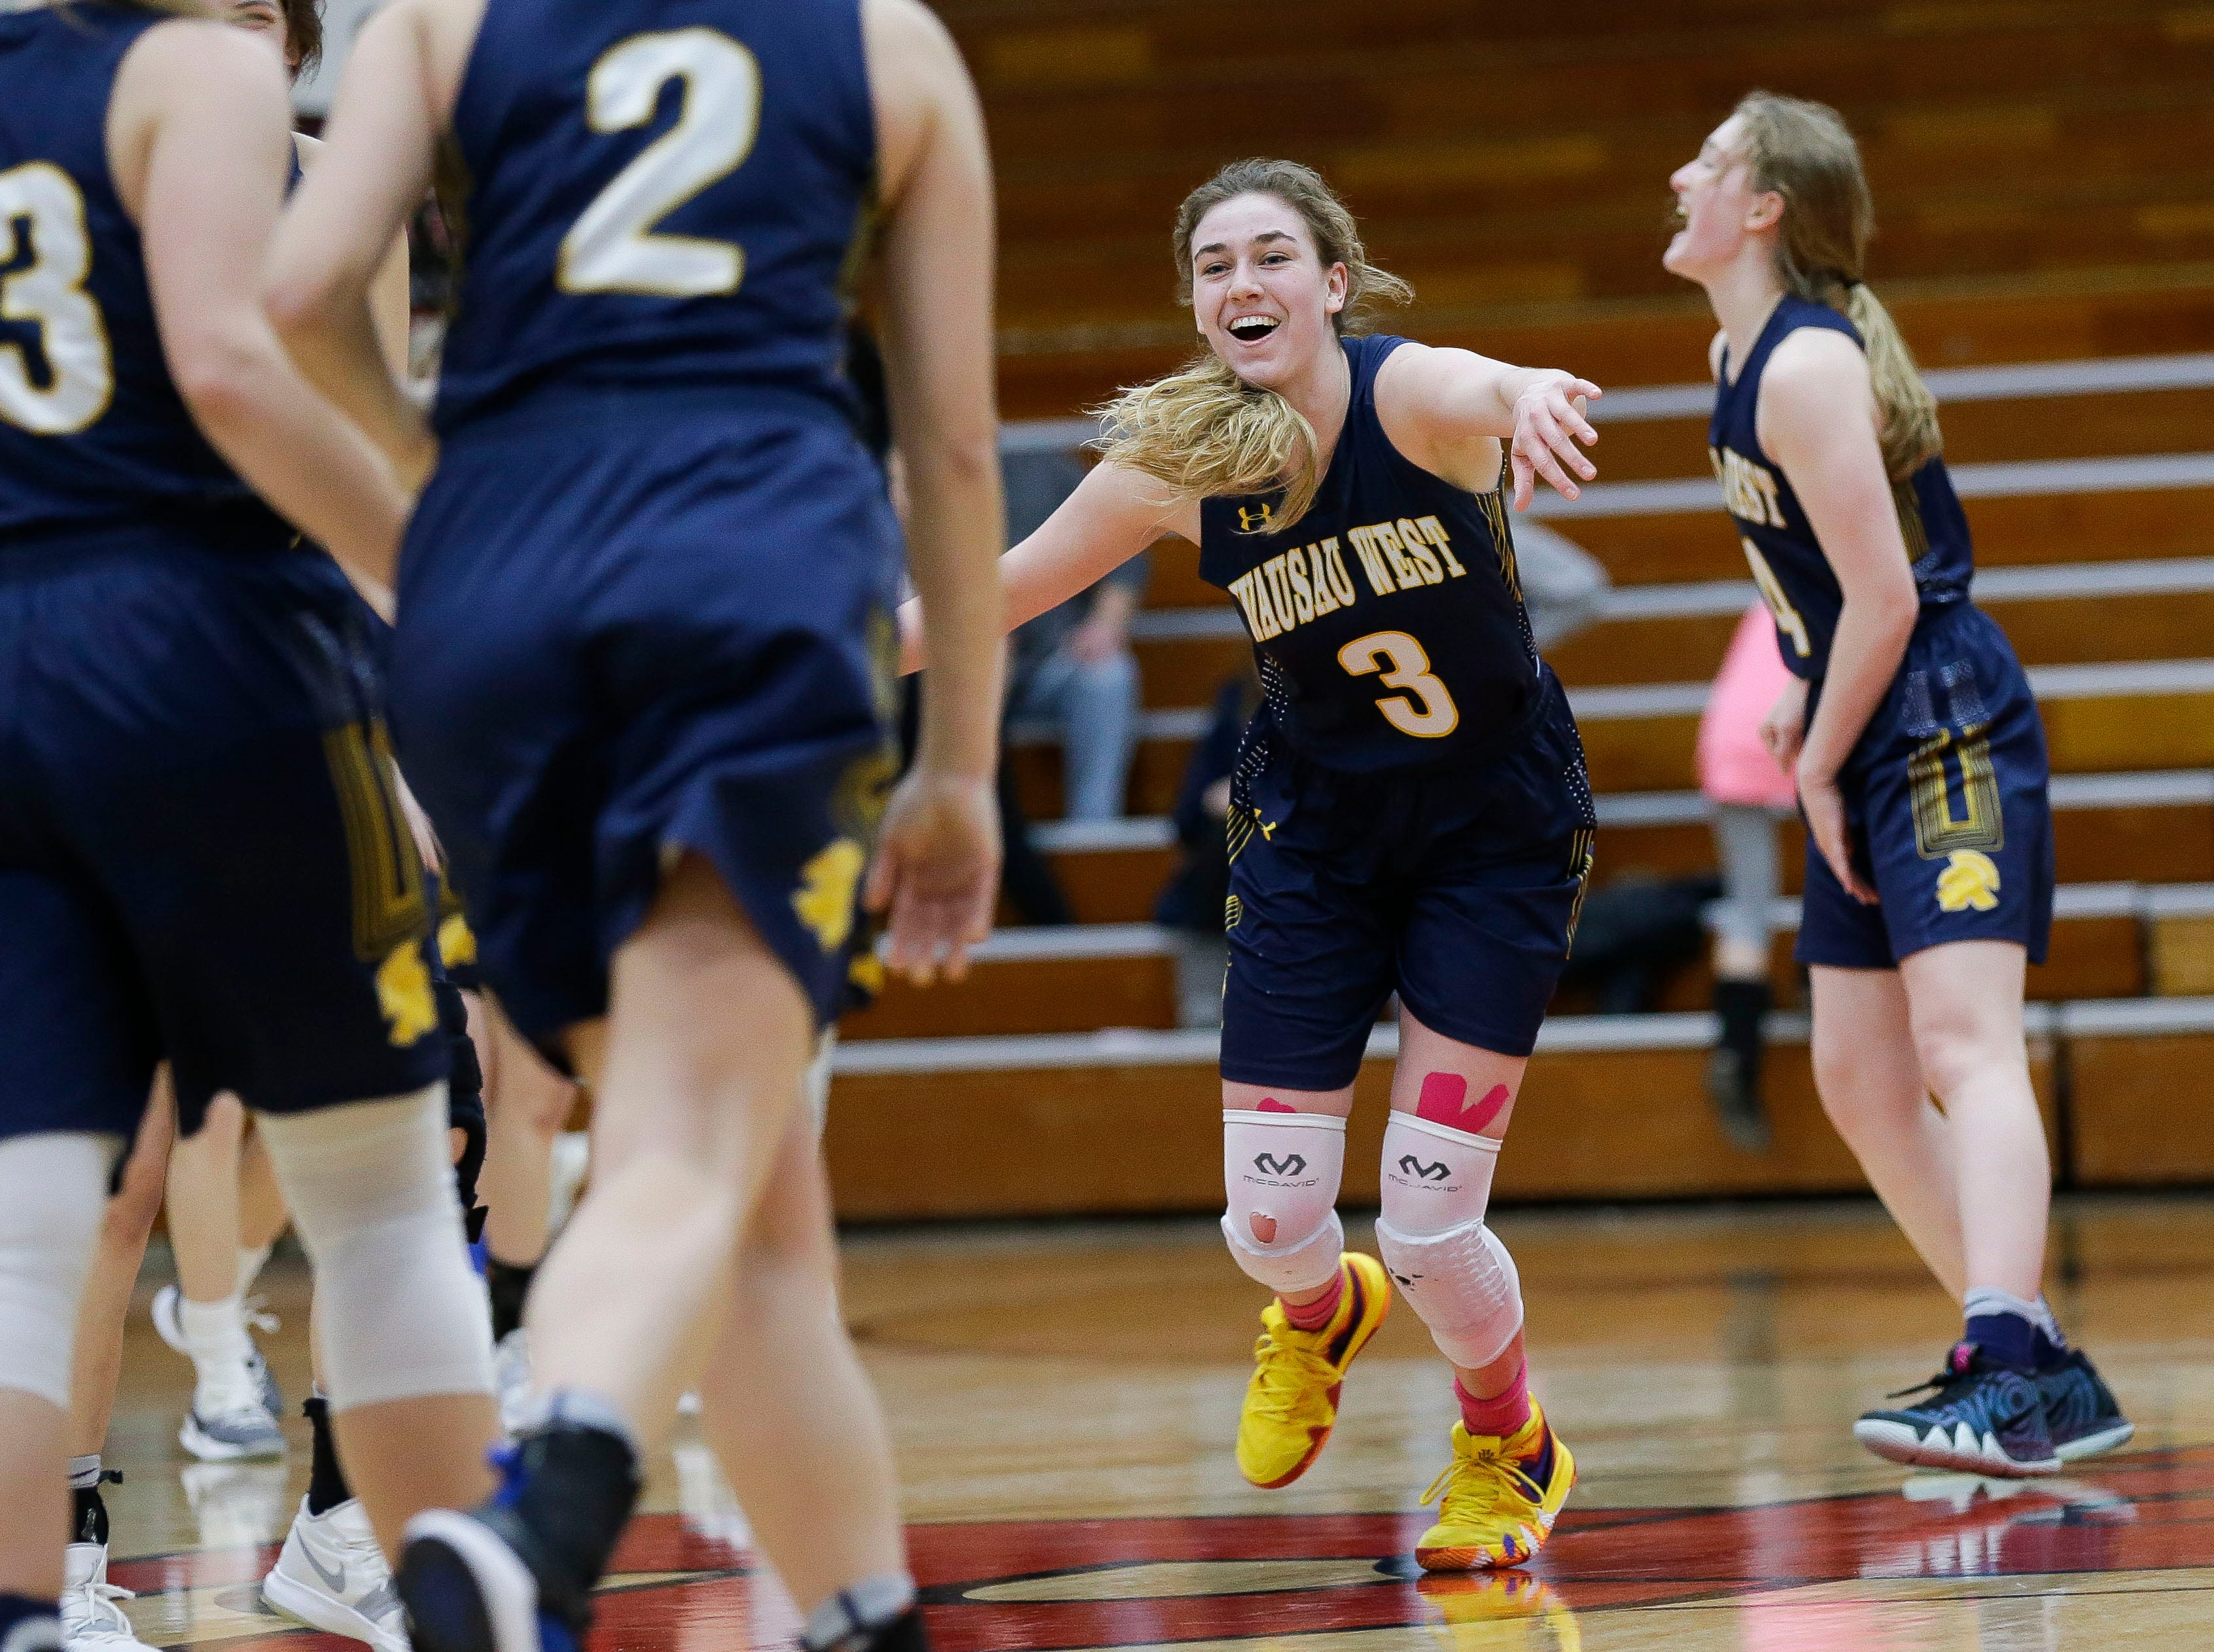 Wausau West's Kadie Deaton (3) celebrates after an 86-78 overtime victory against SPASH on Thursday, February 14, 2019, at SPASH in Stevens Point, Wis.Tork Mason/USA TODAY NETWORK-Wisconsin